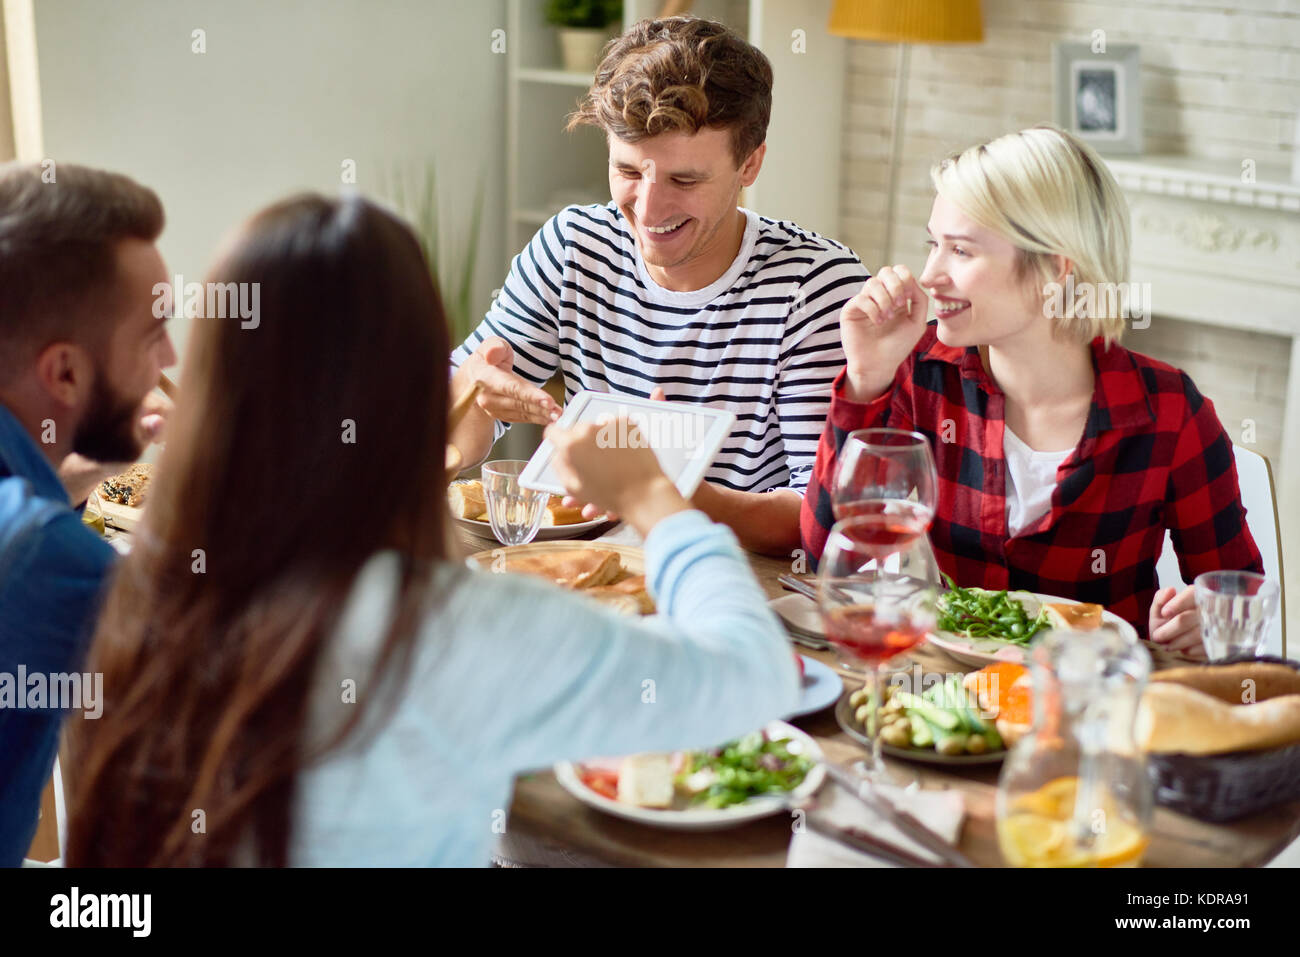 Young People Looking at Digital Tablet during Dinner - Stock Image